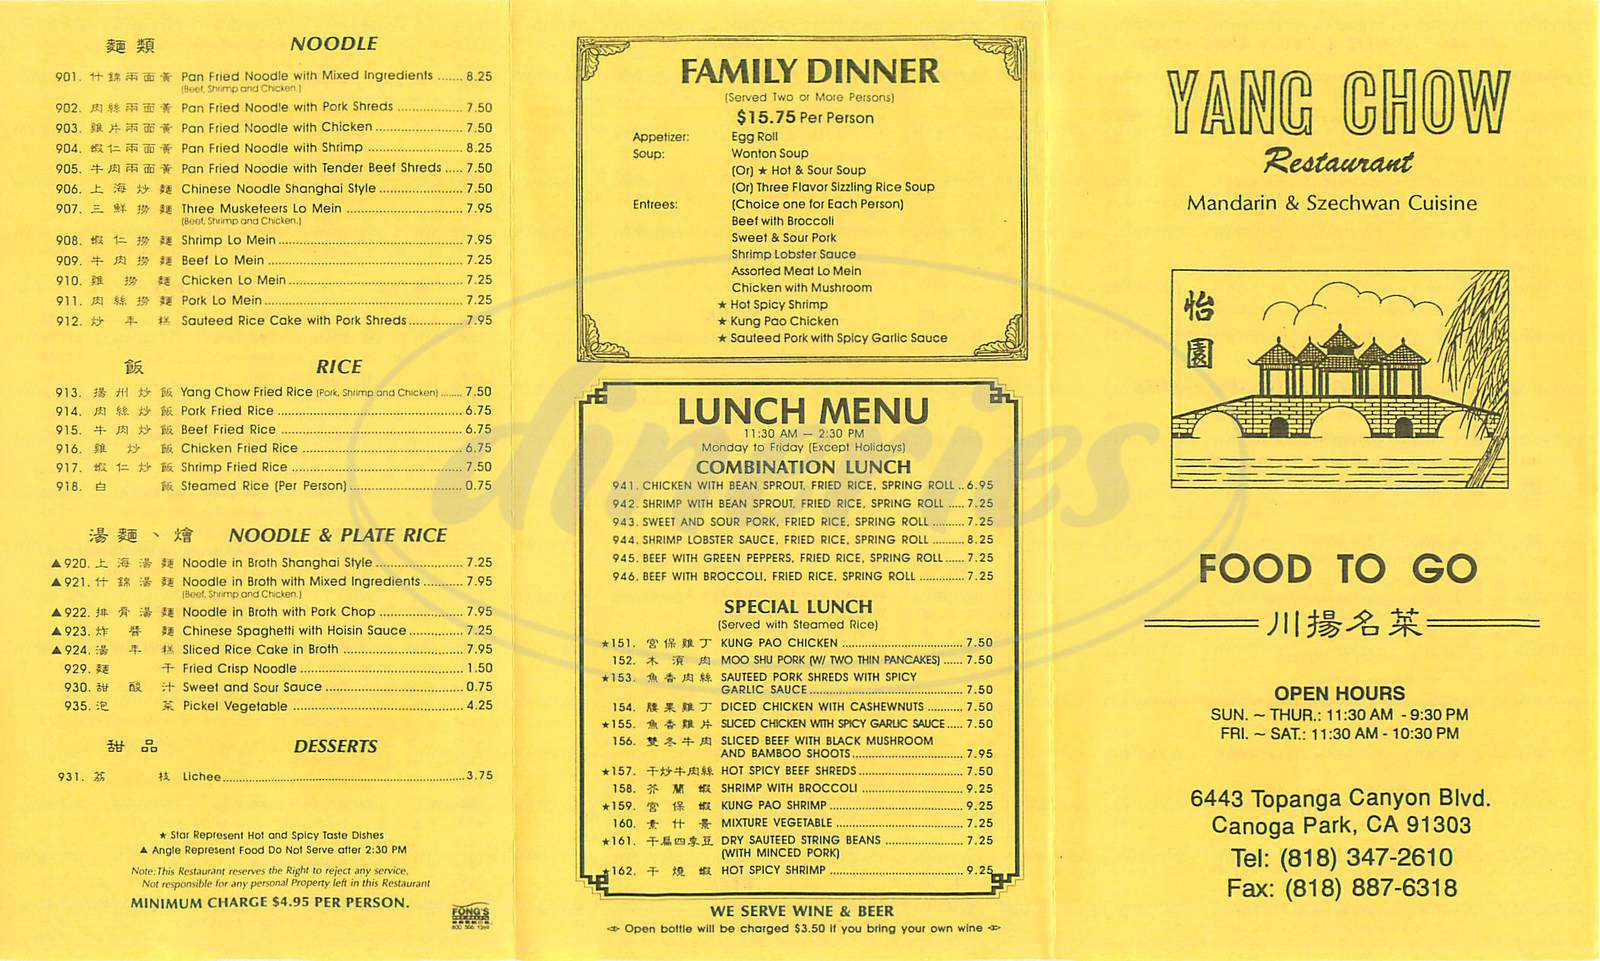 menu for Yang Chow